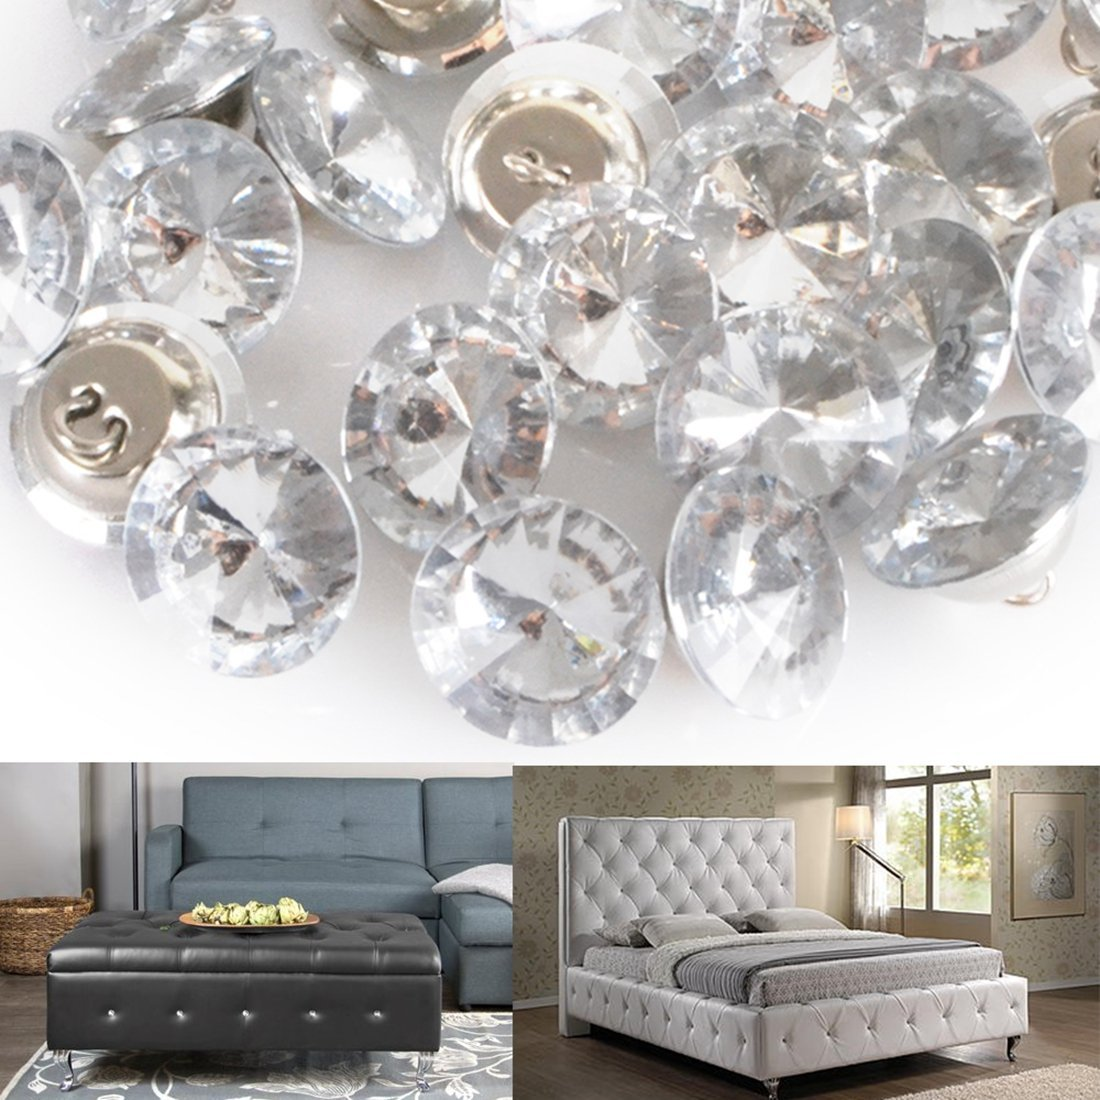 Yosoo 50Pcs Rhinestone Crystal Upholstery Buttons with Metal Loop Buttons for Sewing Sofa Button DIY Crafts Decoration 20mm